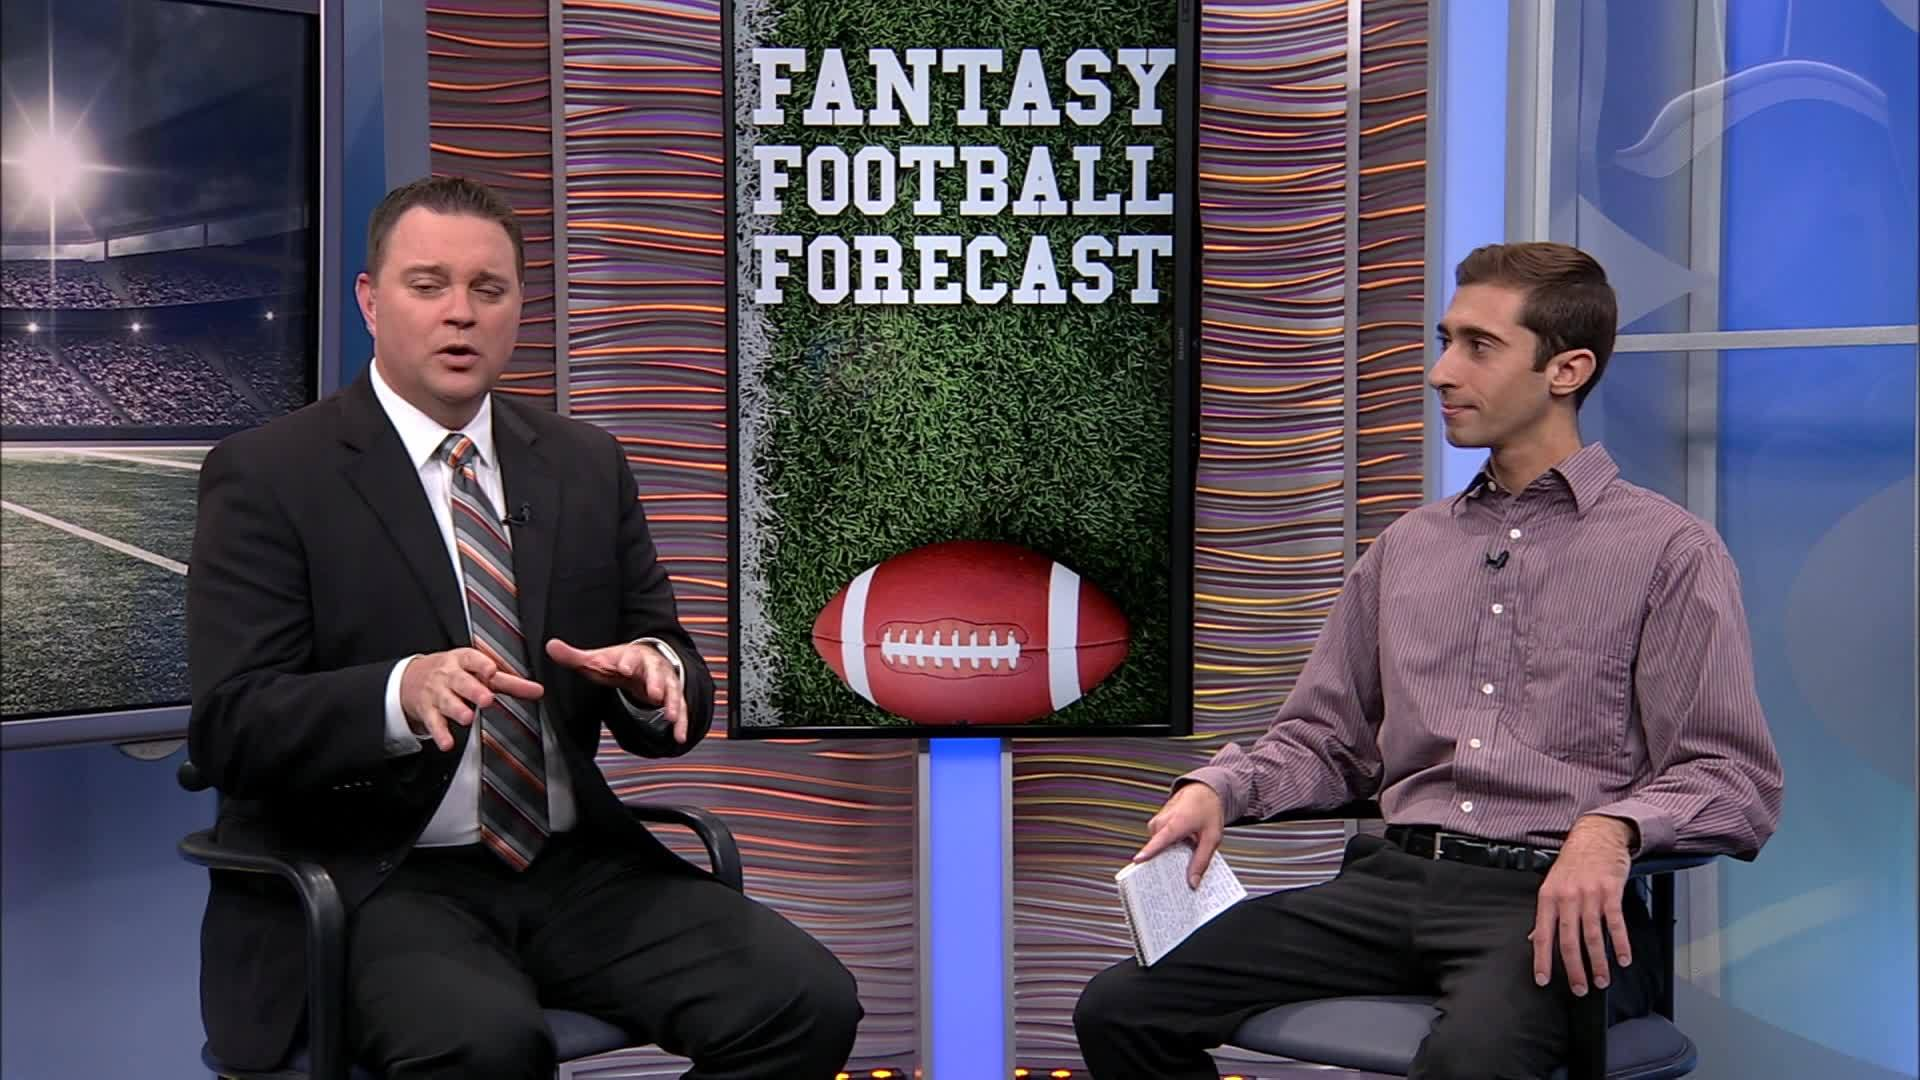 Championship games in sight on the Fantasy Football Forecast